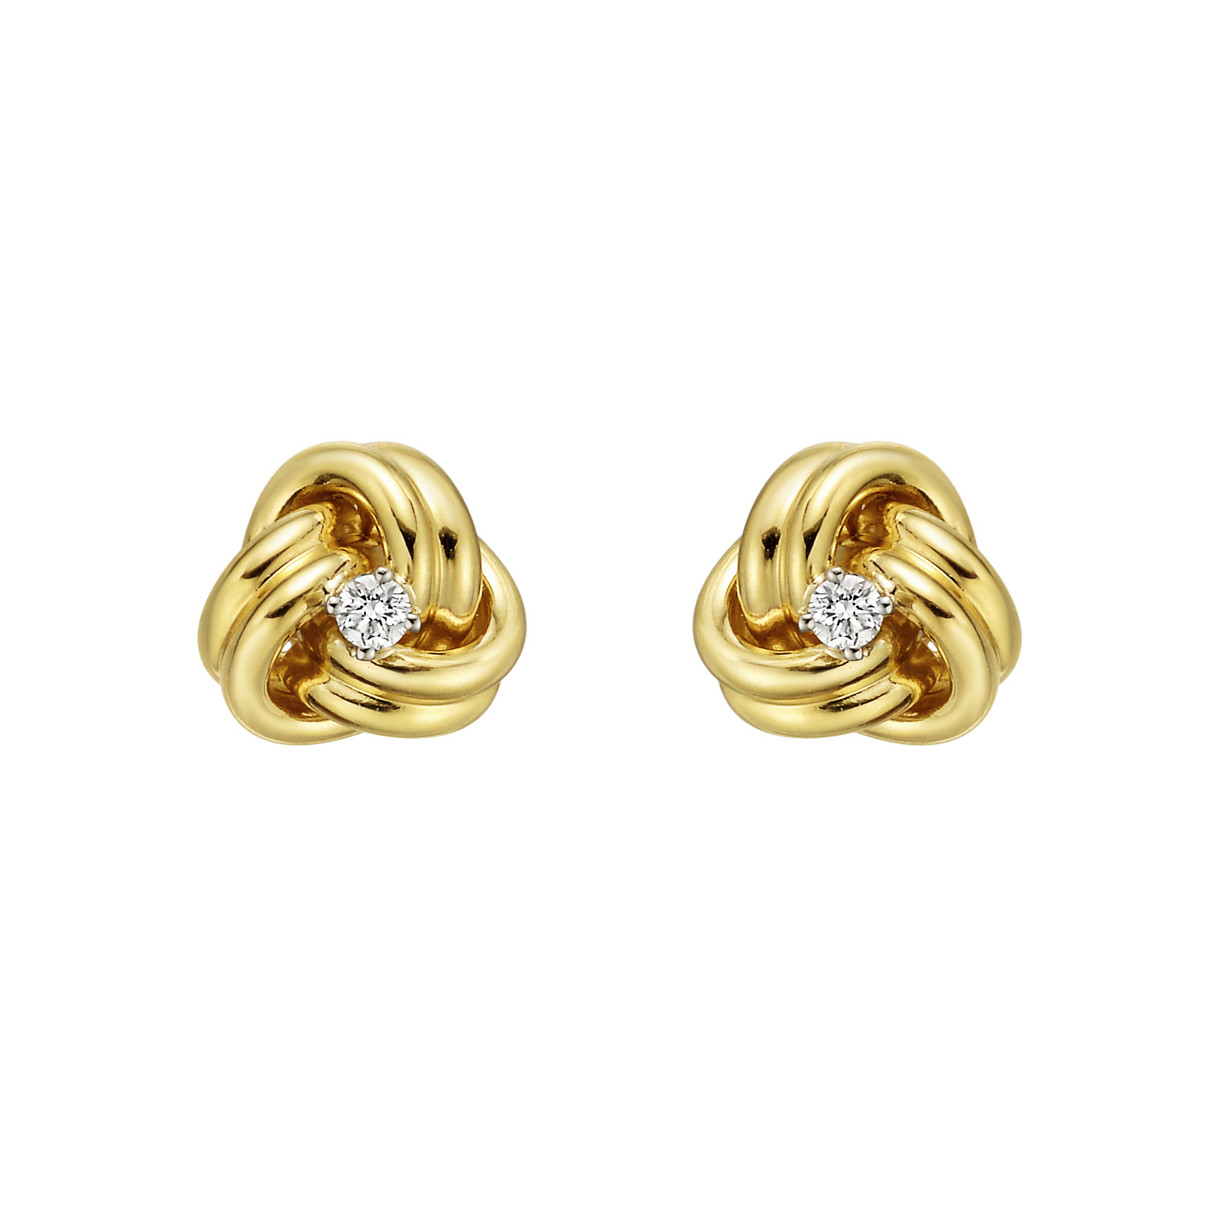 Medium 18k Yellow Gold & Diamond Knot Earstuds